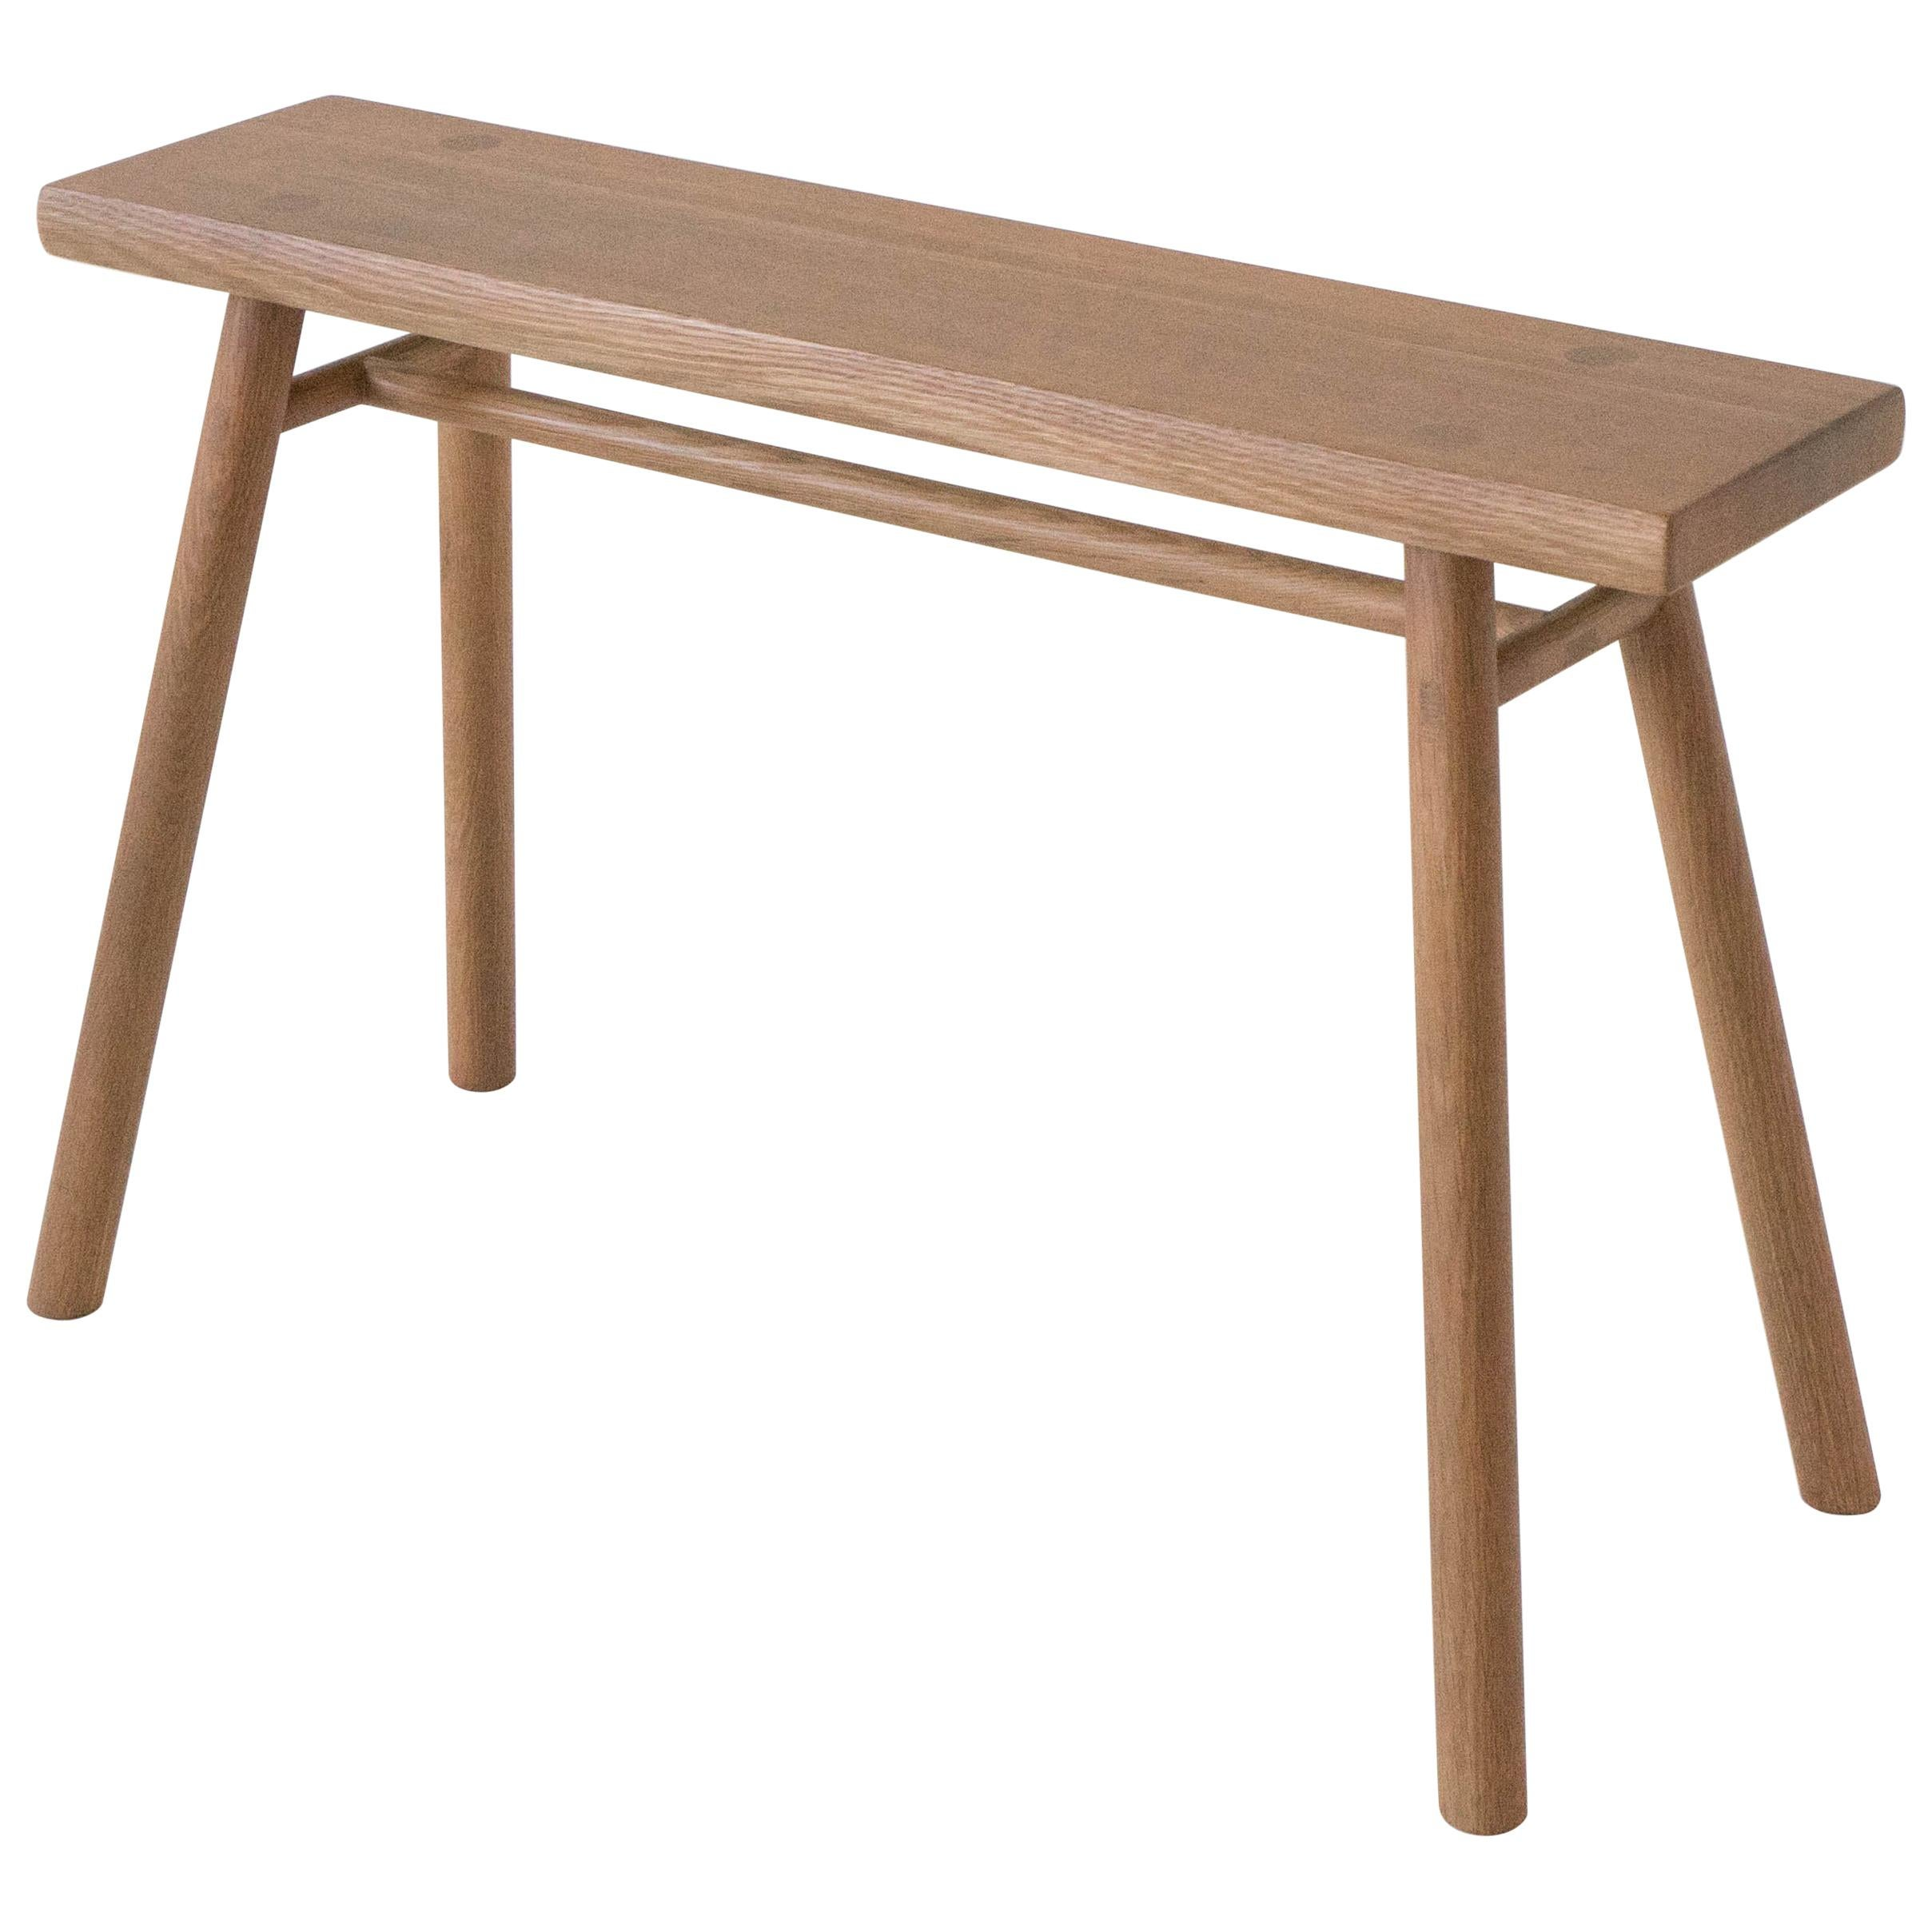 Wing Stand by Sun at Six, Sienna Minimalist Stool or Side Table in Wood